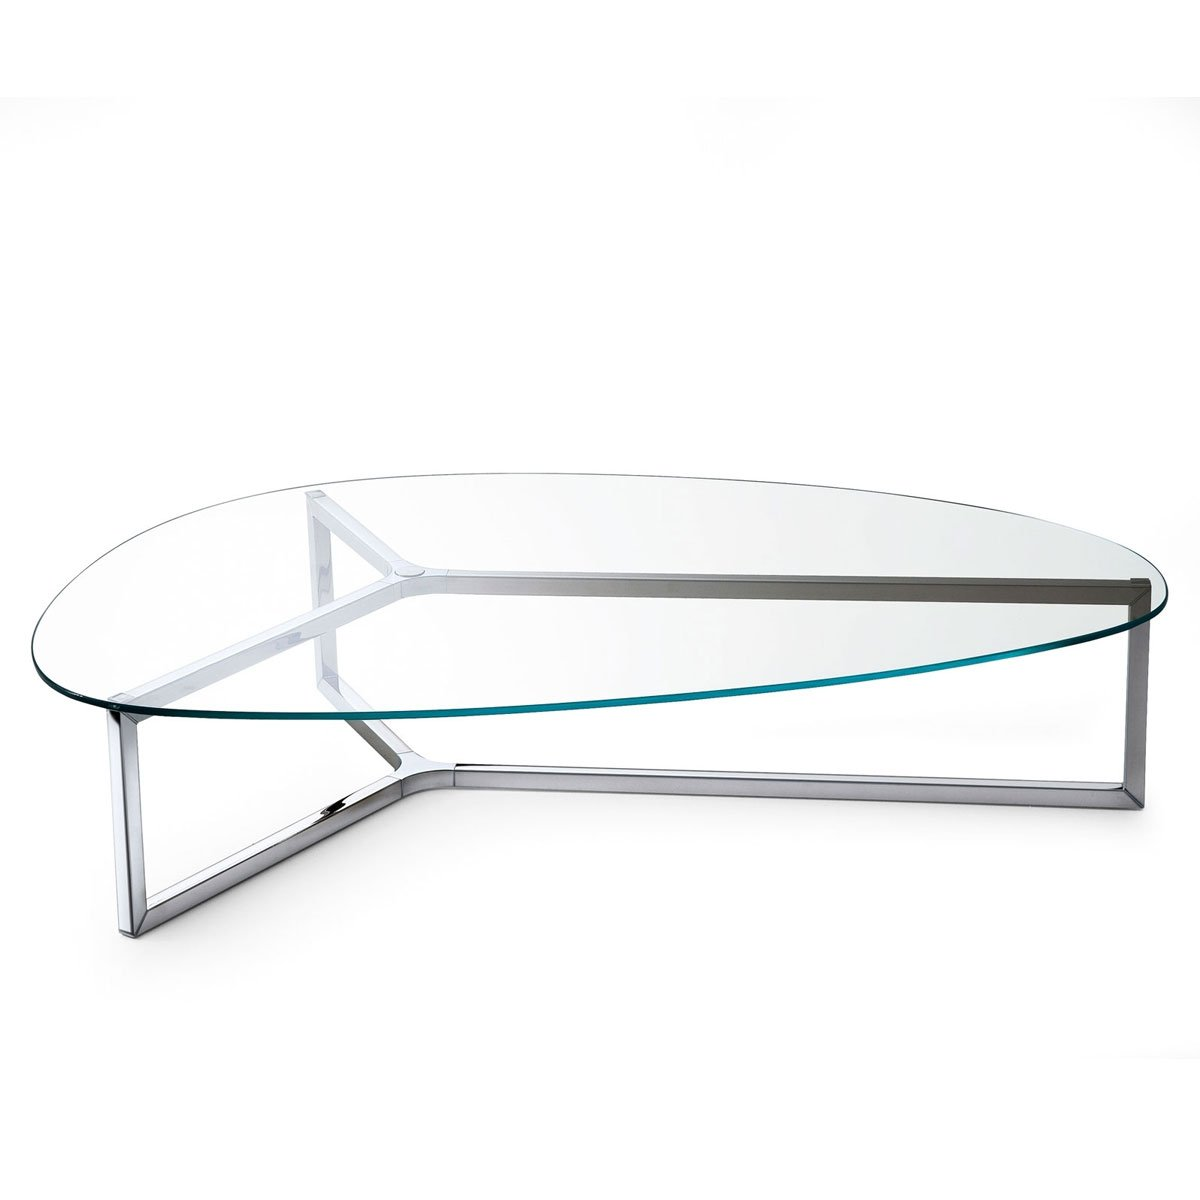 Raj 3 Glass And Metal Coffee Table By Gallotti Radice Klarity Glass Furniture